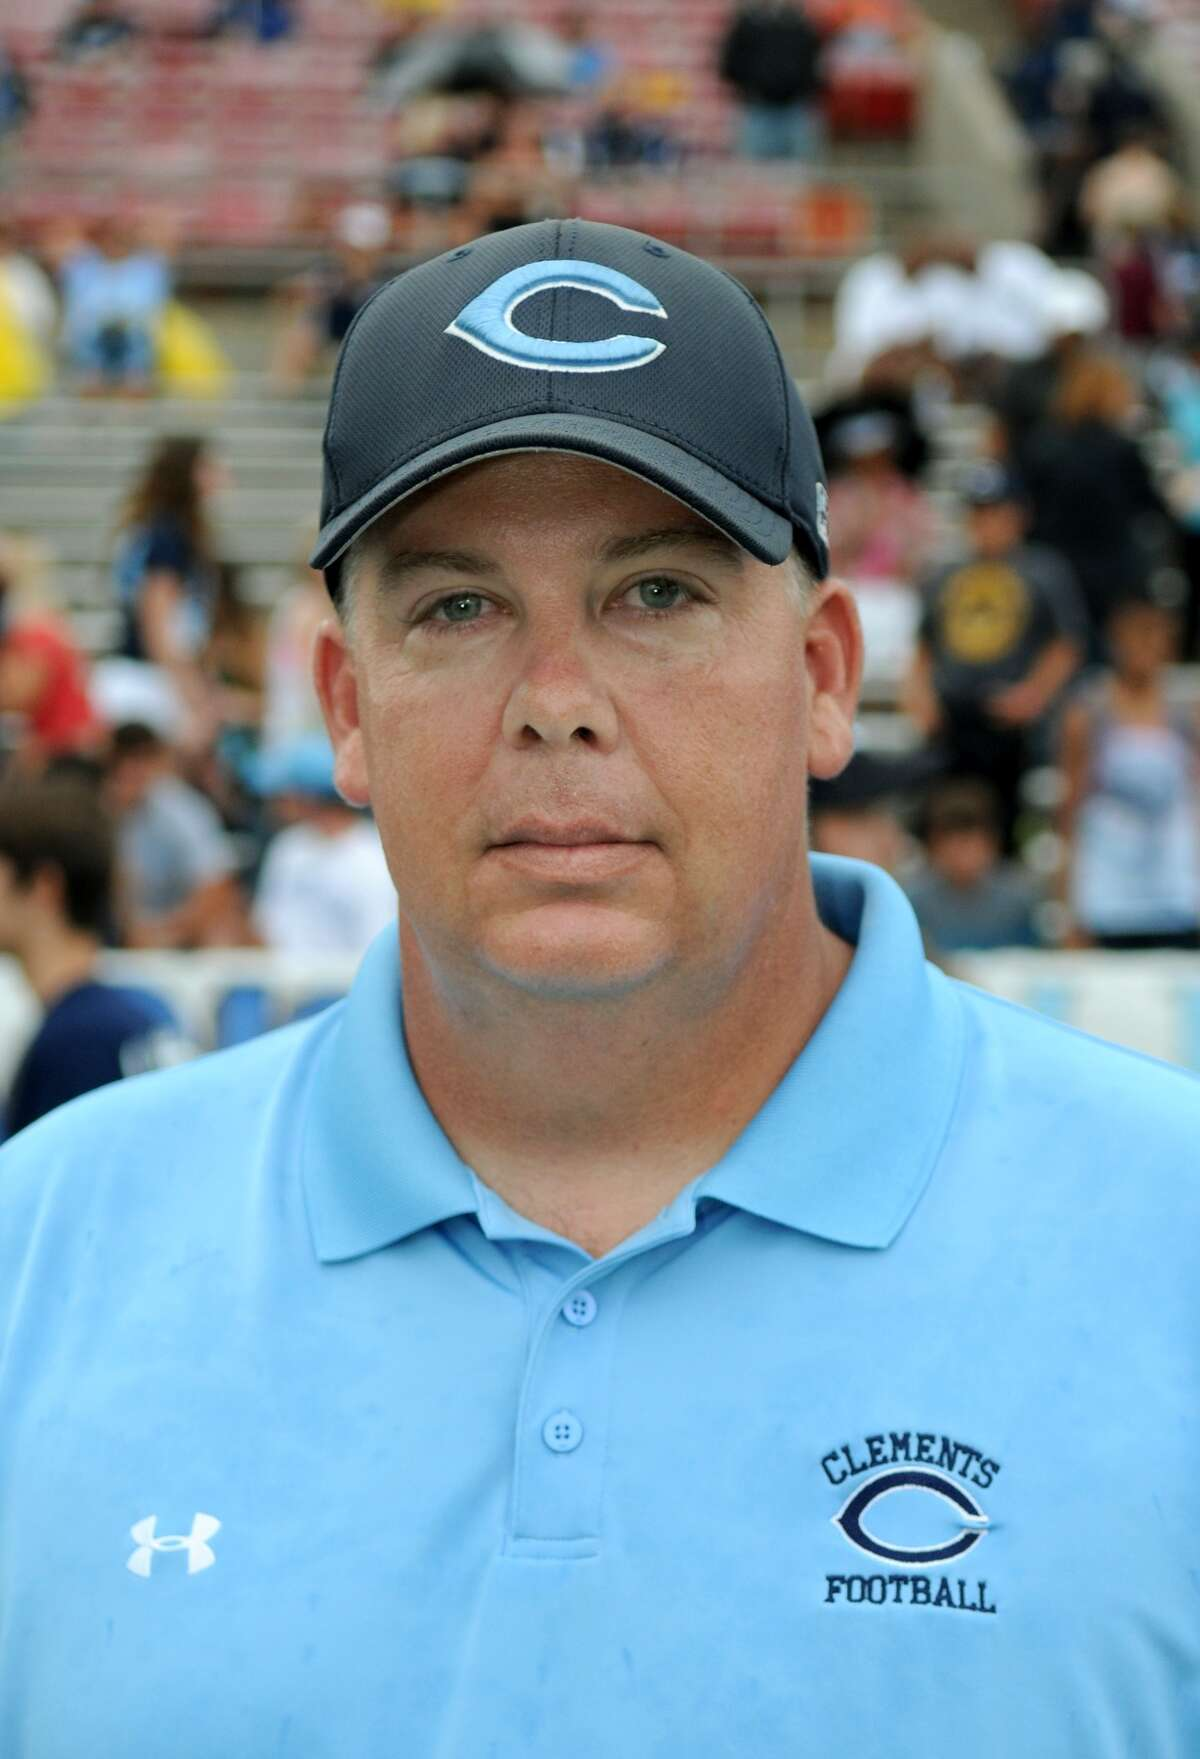 Clements head coach Keith Knowles